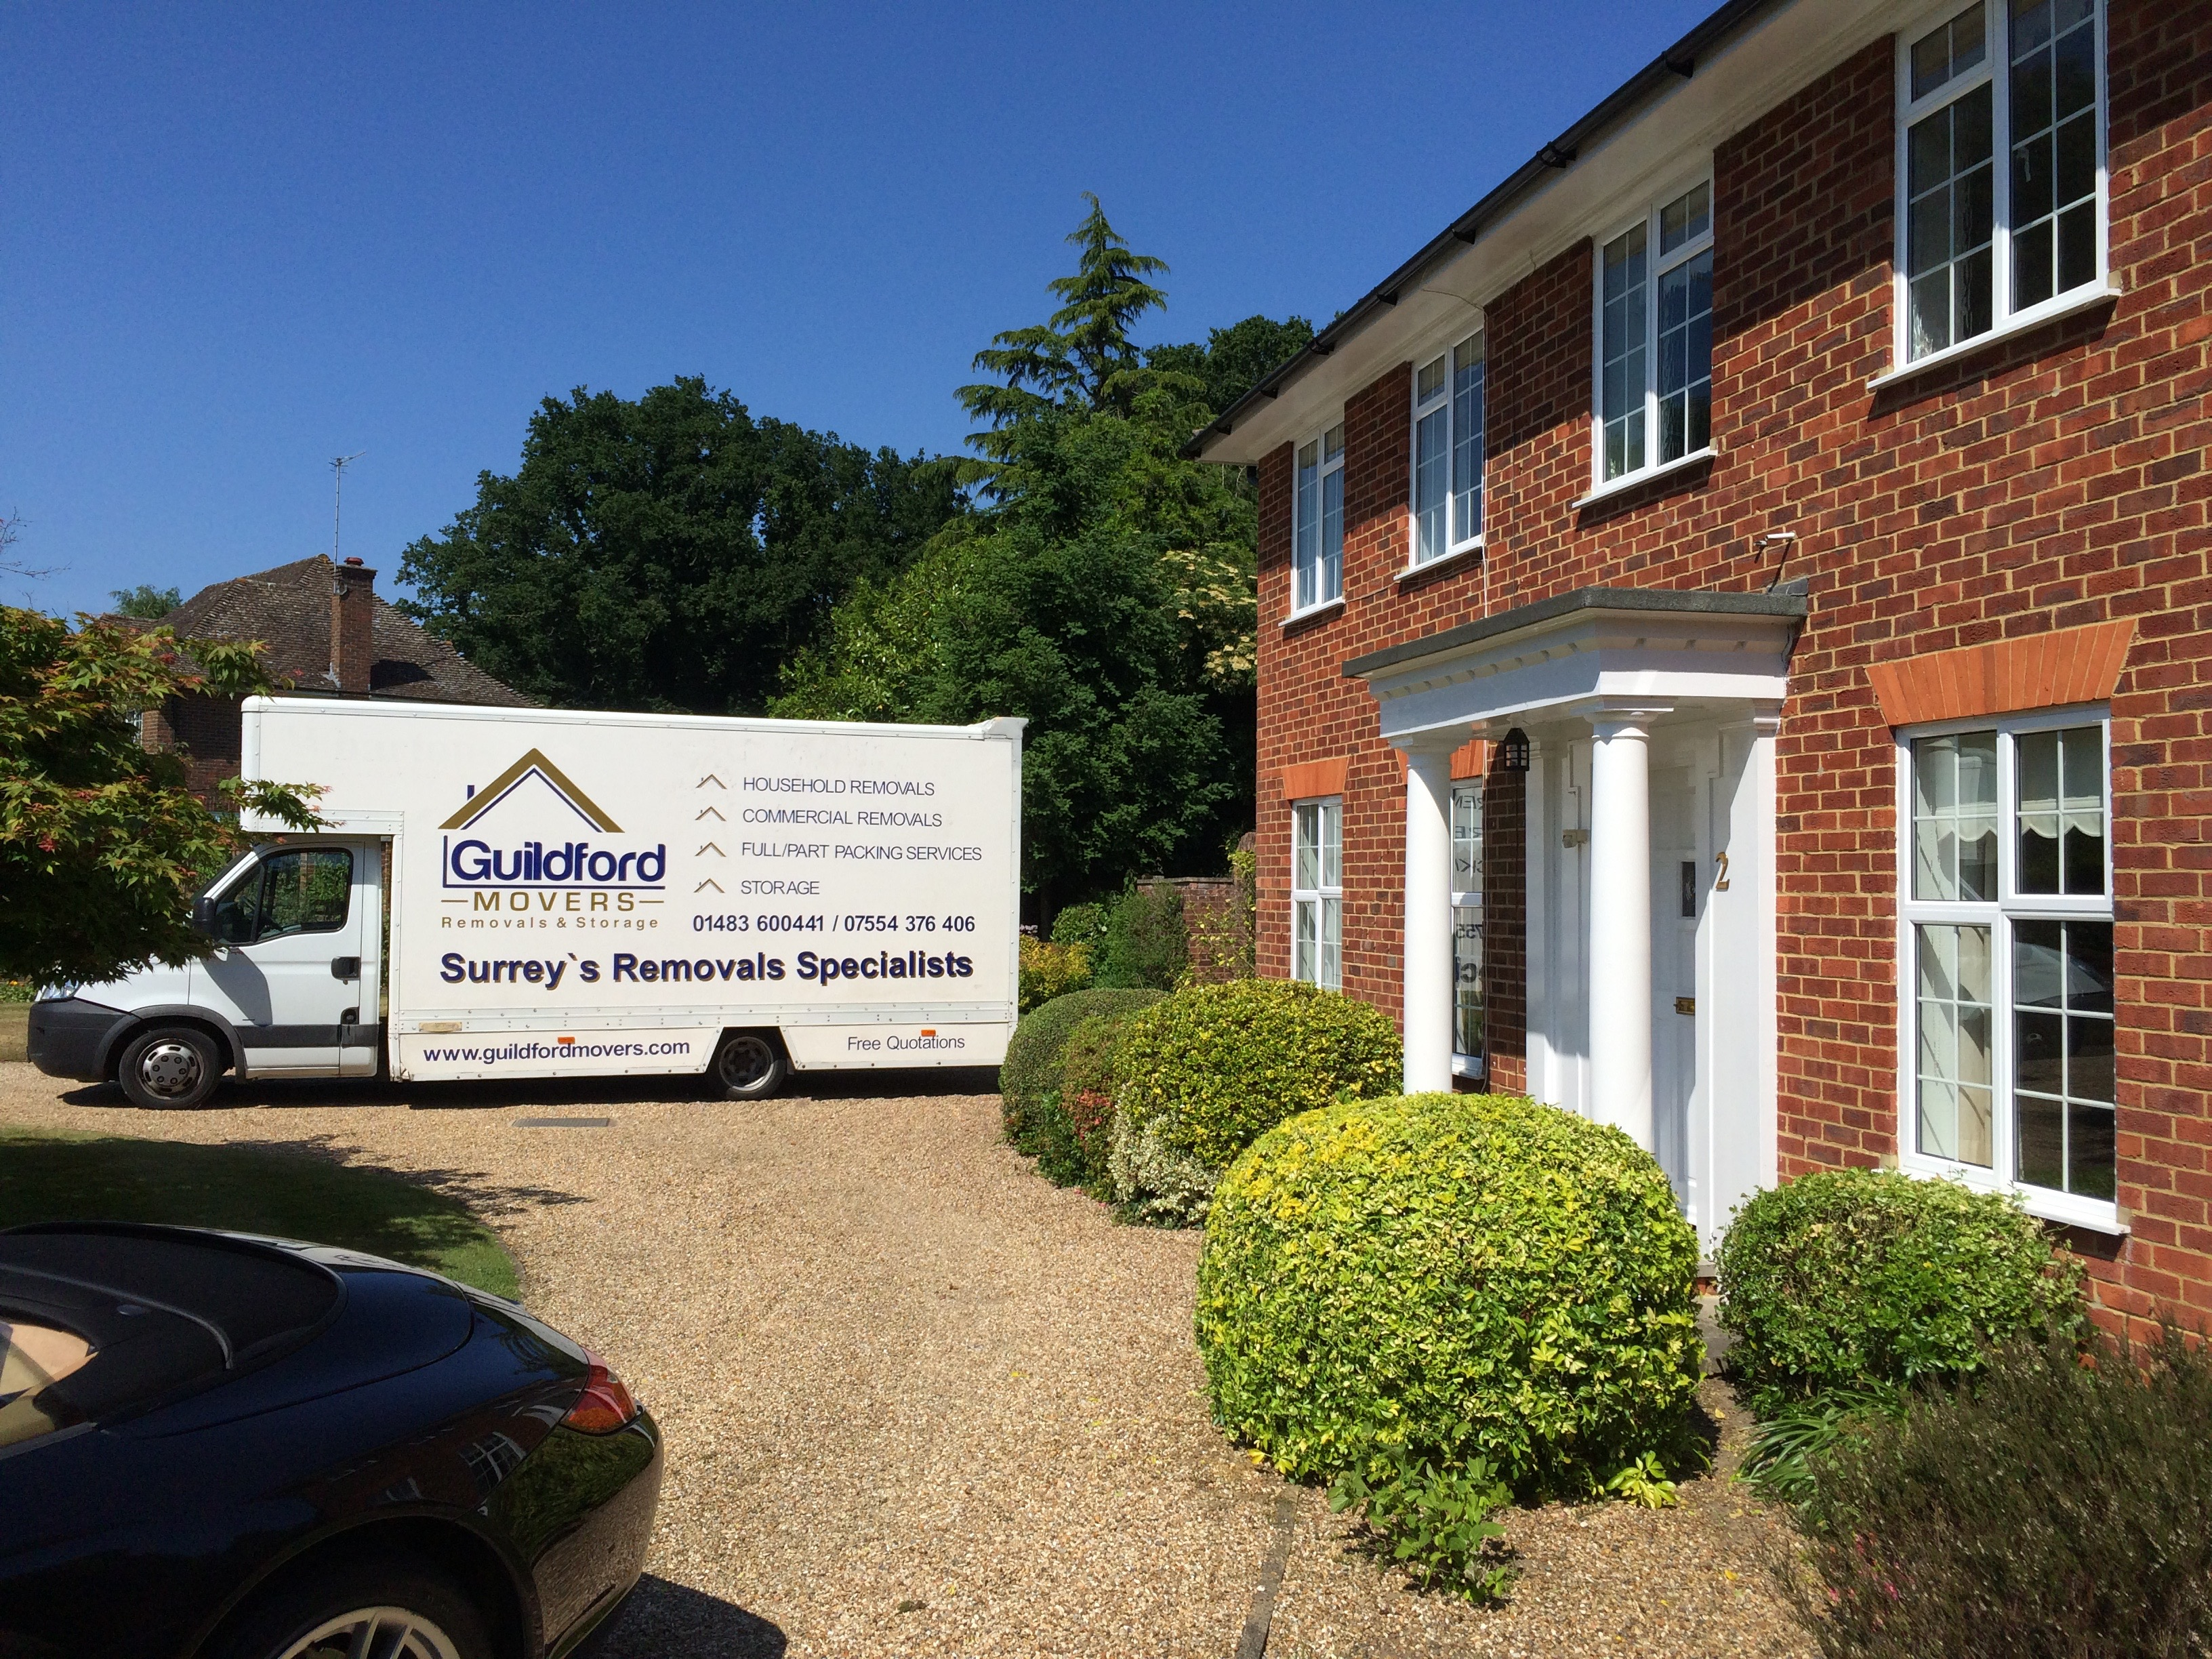 guildford movers business moves